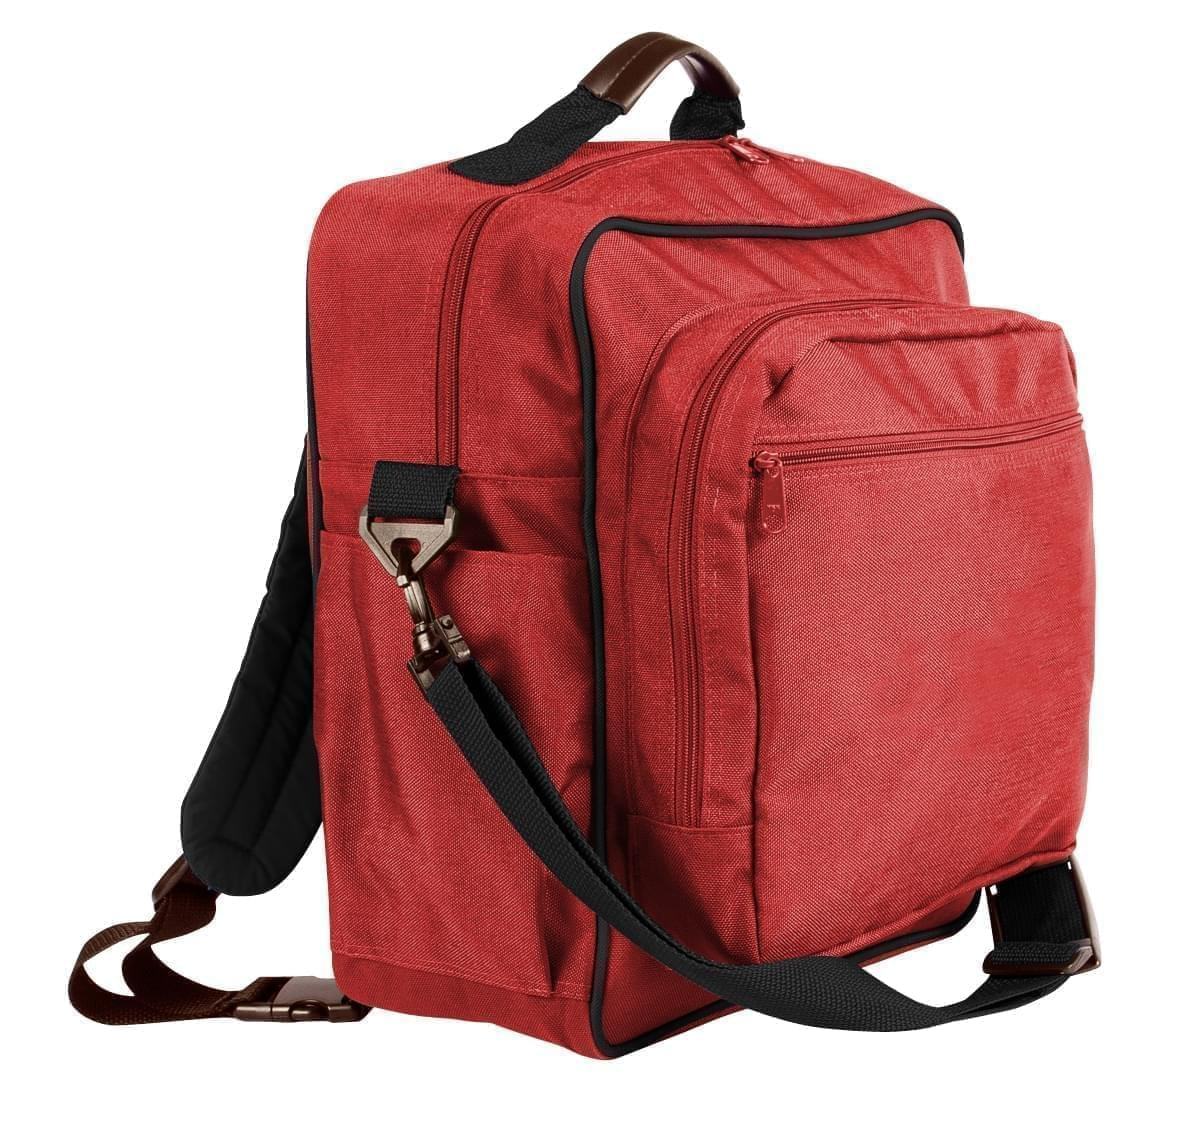 USA Made Poly Daypack Rucksacks, Red-Black, 1070-AZR